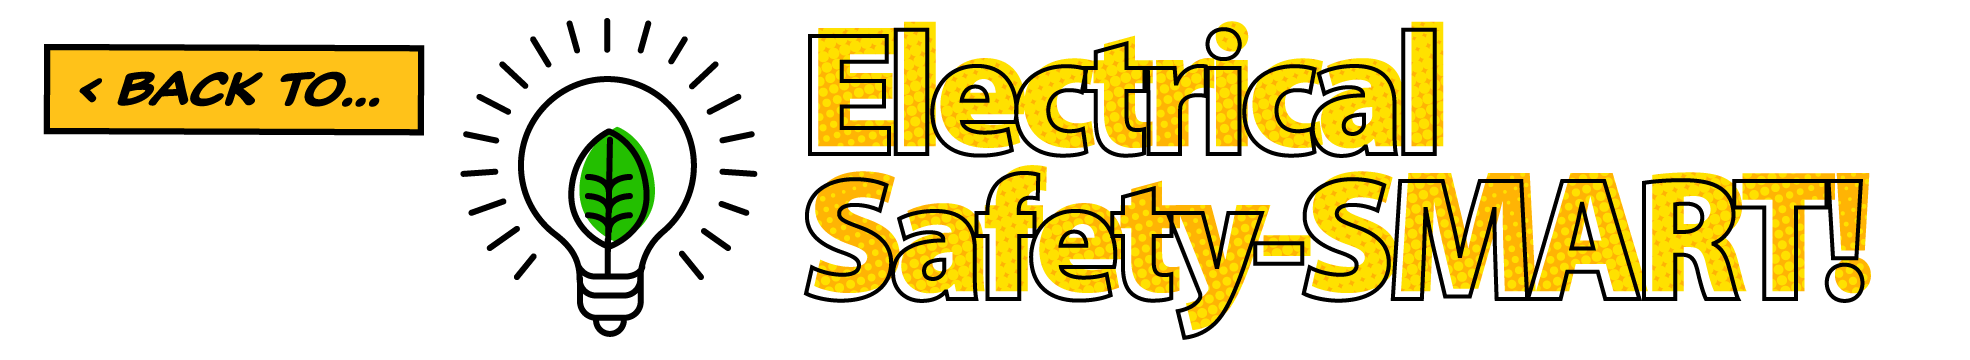 Back to… Electrical Safety-SMART!